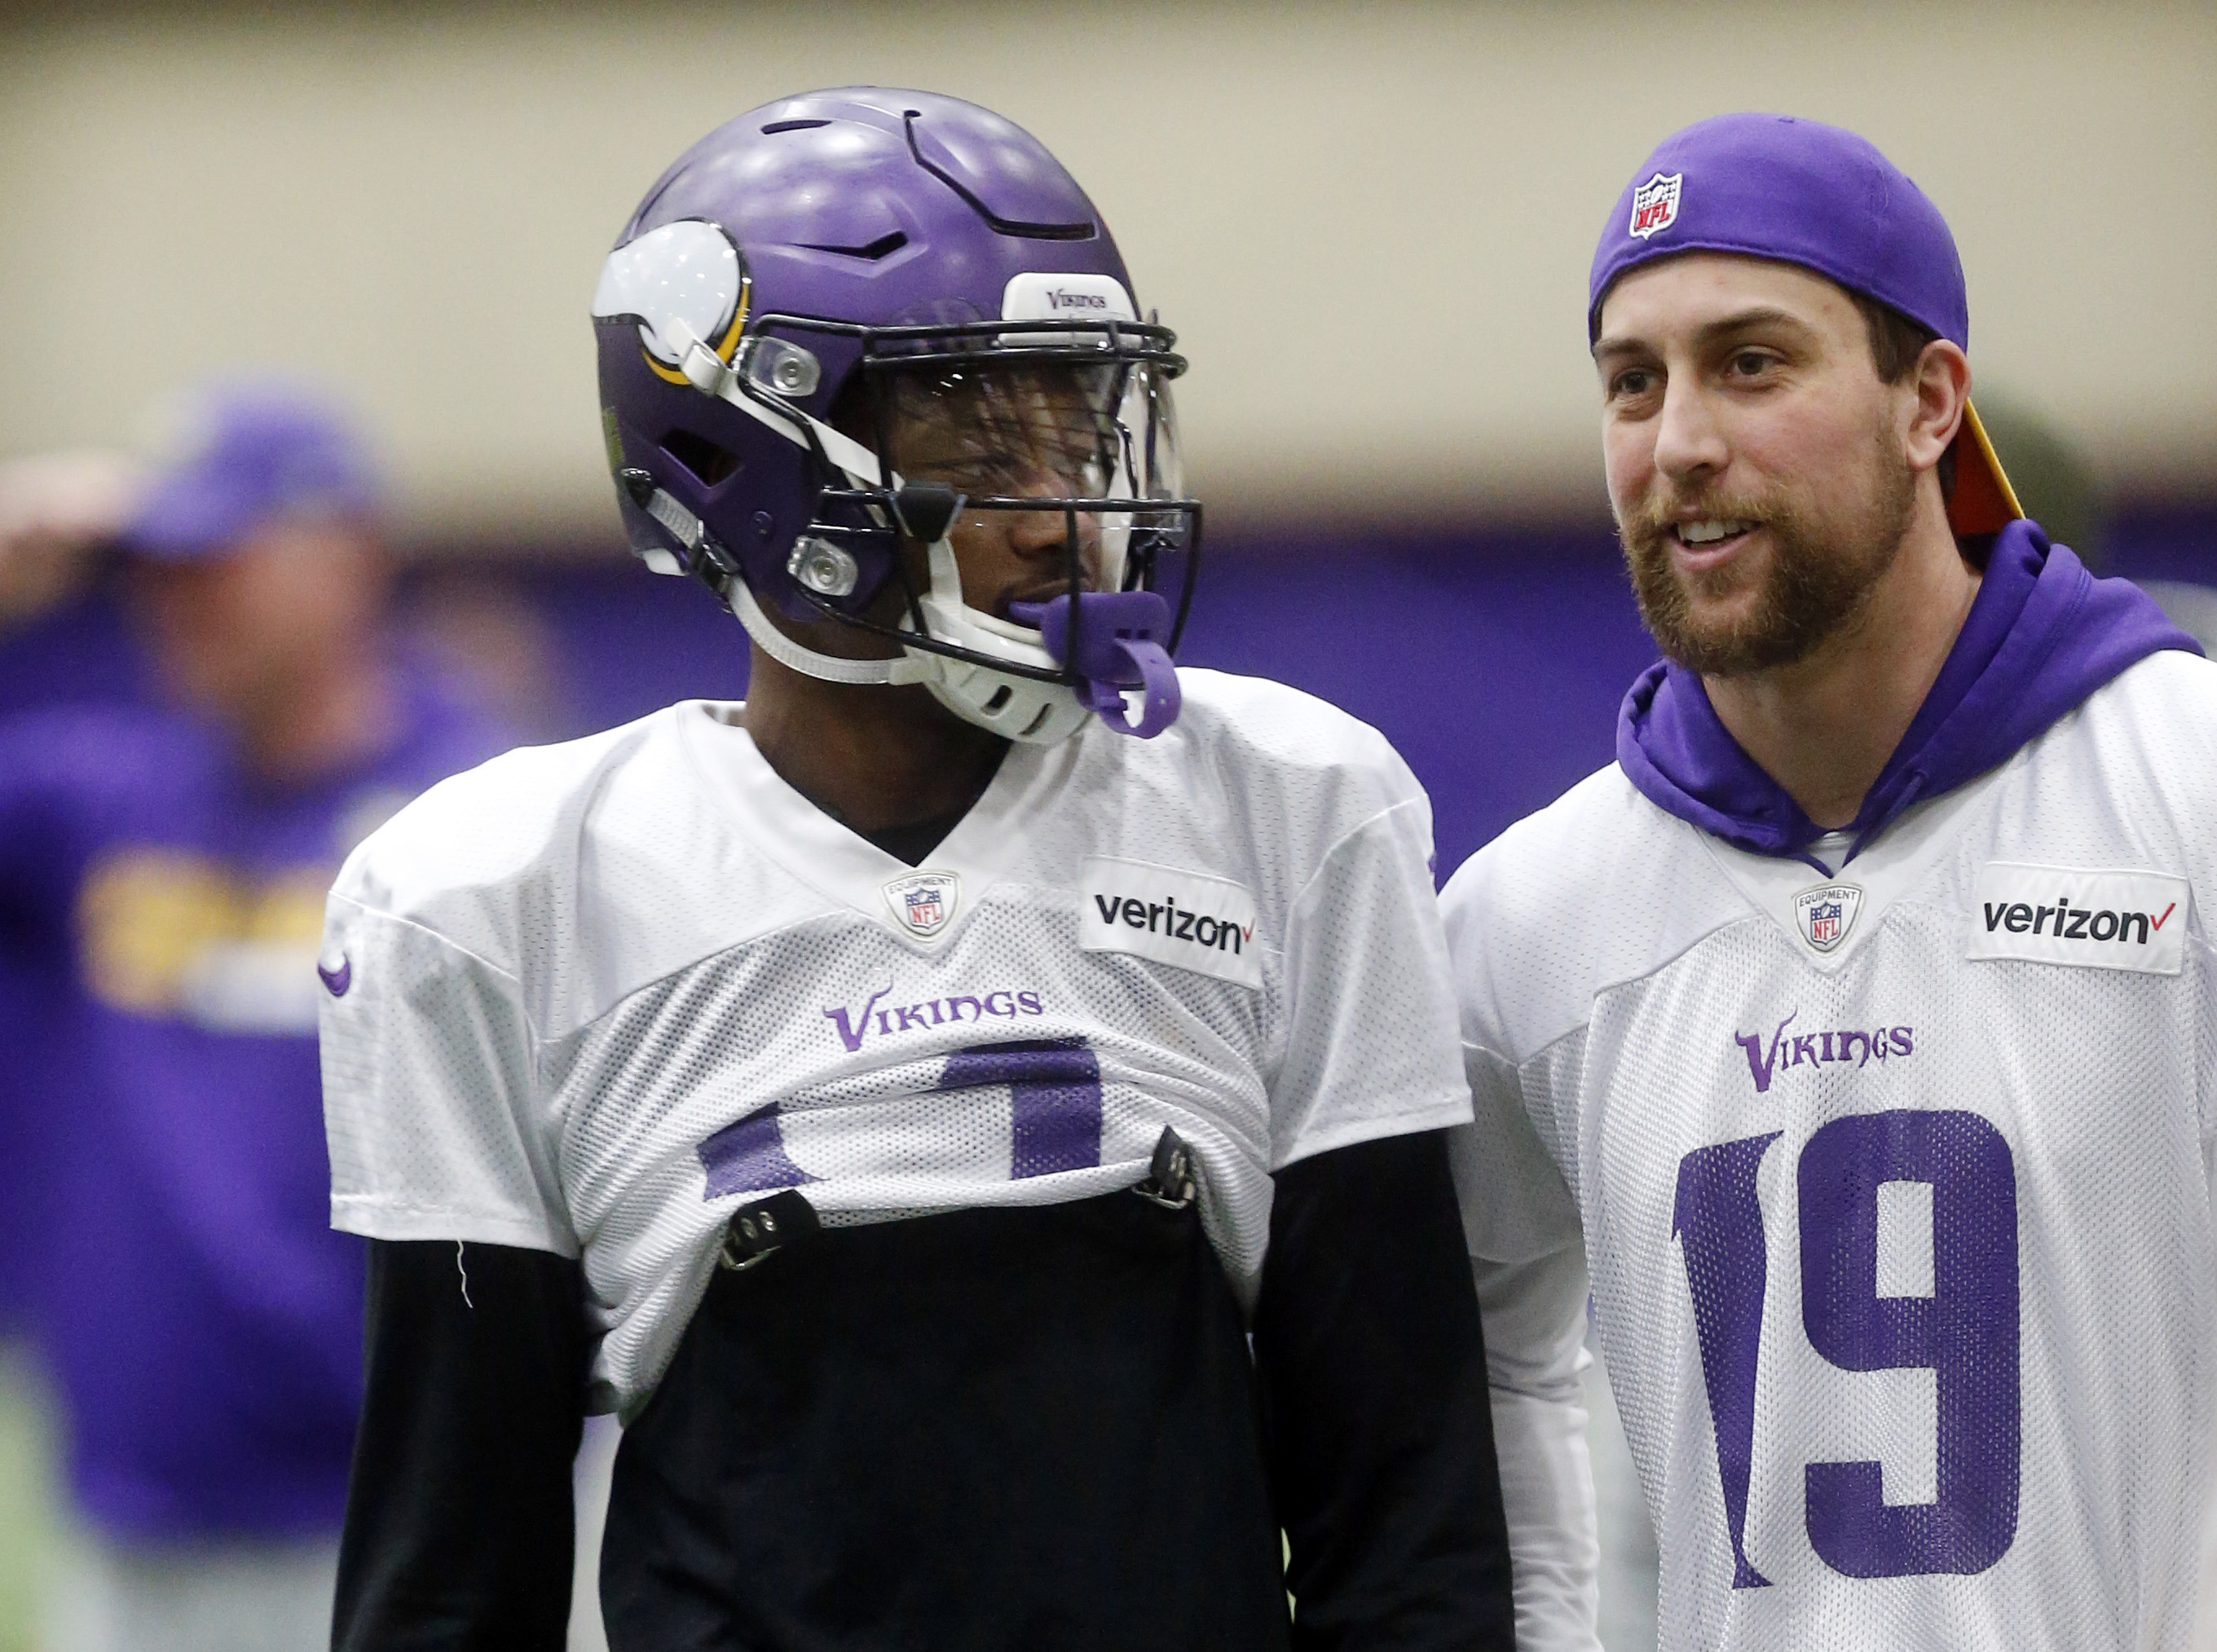 Vikings wide receiver Stefon Diggs, left, chats with fellow wide receiver Adam Thielen during practice Wednesday.